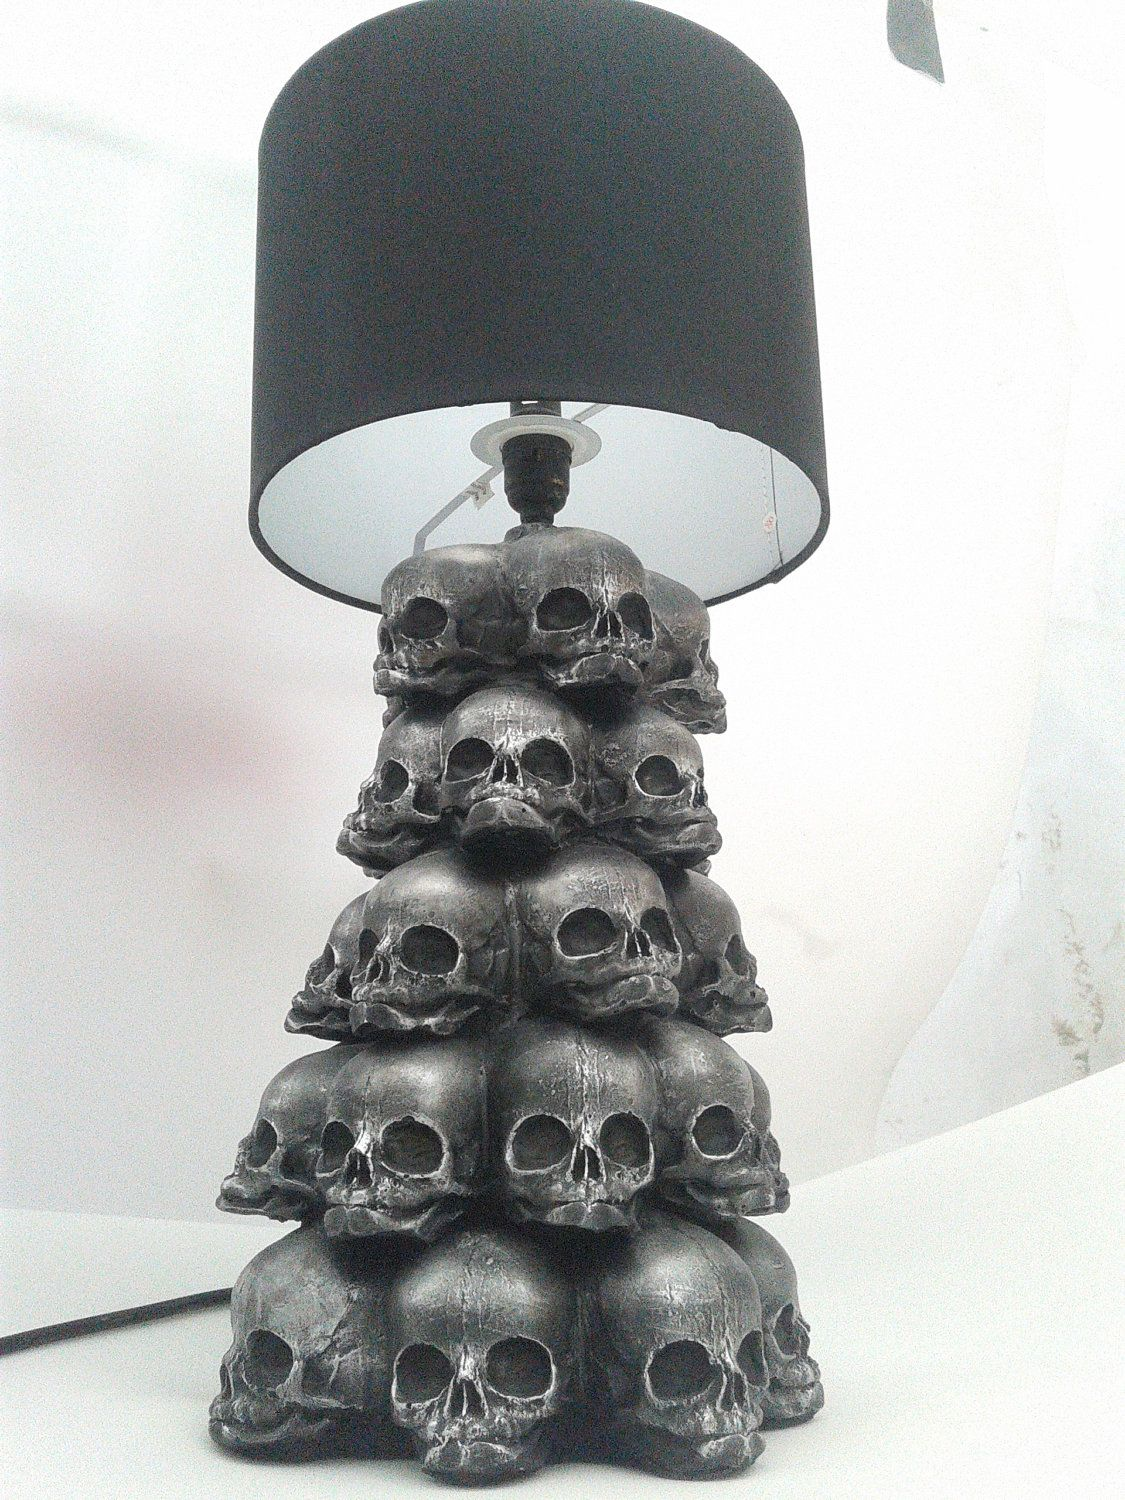 baby skull lamp 90 00 via etsy i think this is the coolest baby skull lamp 90 00 via etsy i think this is the coolest